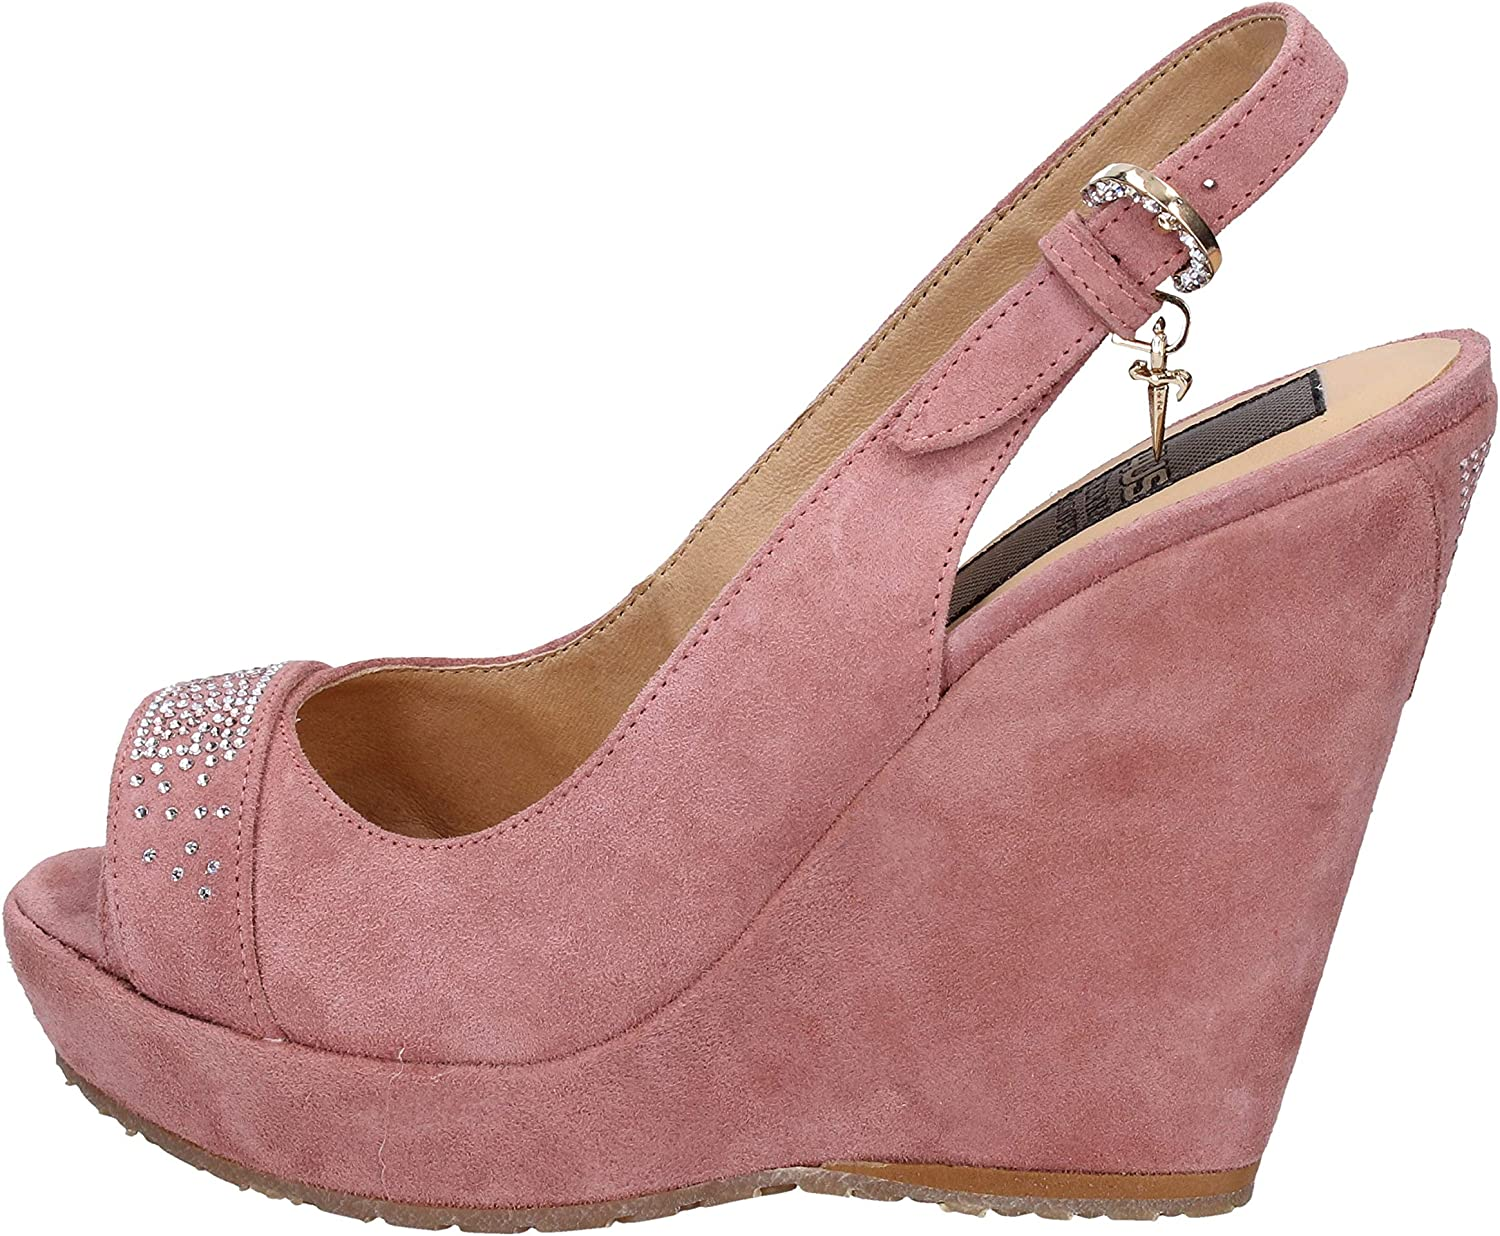 CESARE PACIOTTI 4US Wedges-Sandals Womens Suede Pink